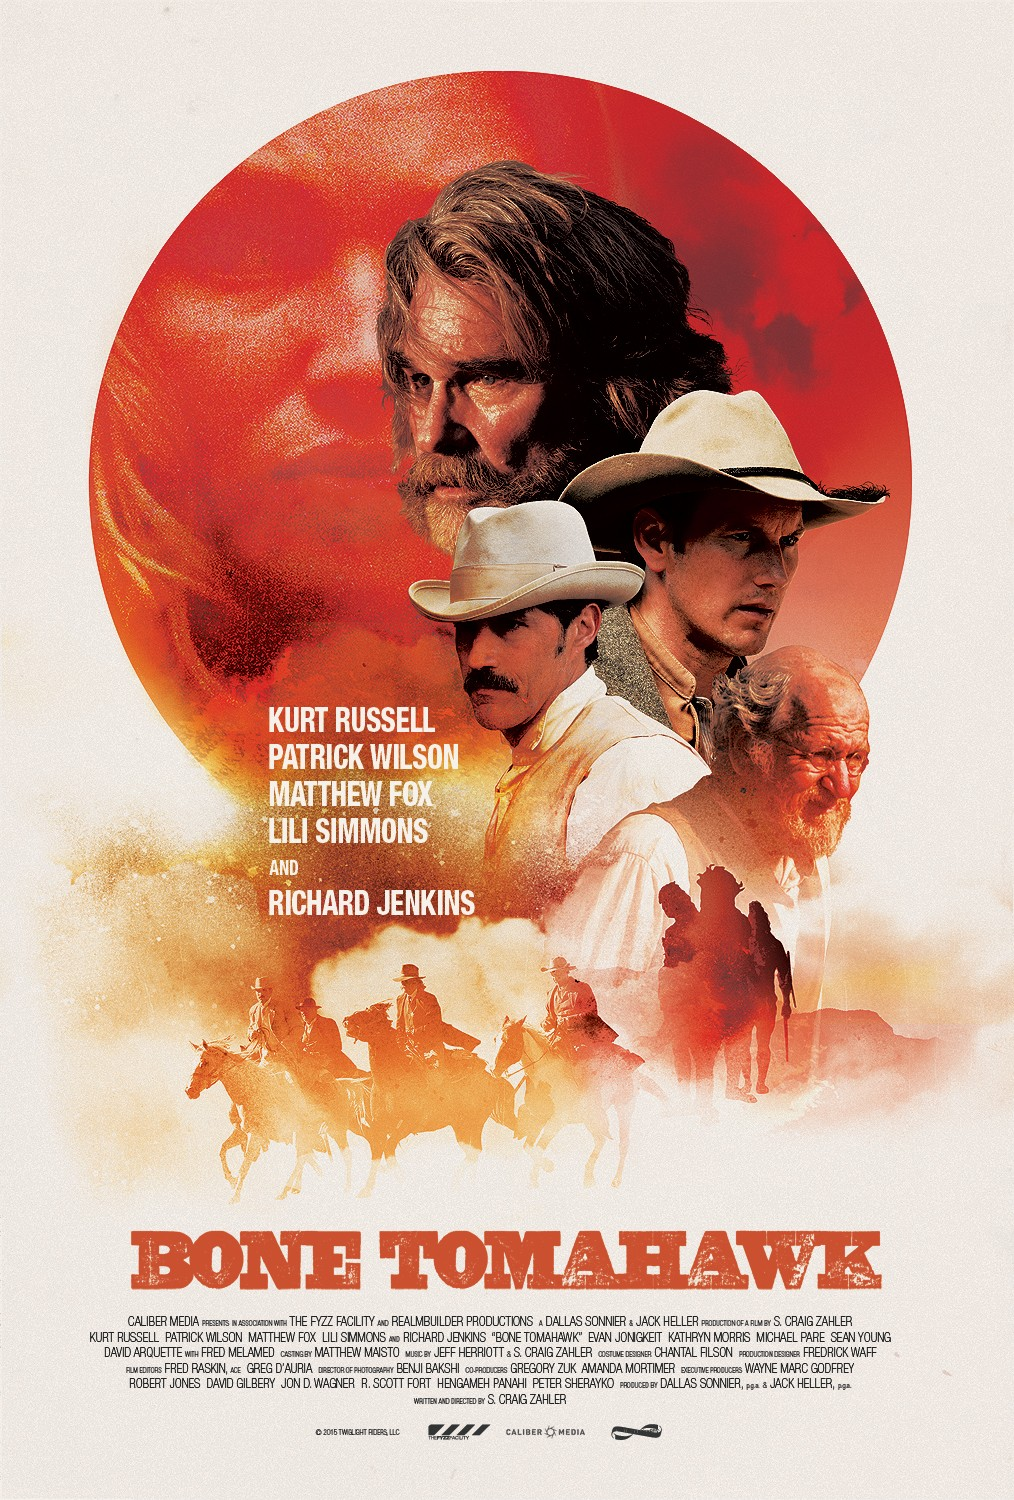 http://www.shocktillyoudrop.com/reviews/388551-review-graphic-horror-meets-western-bone-tomahawk/